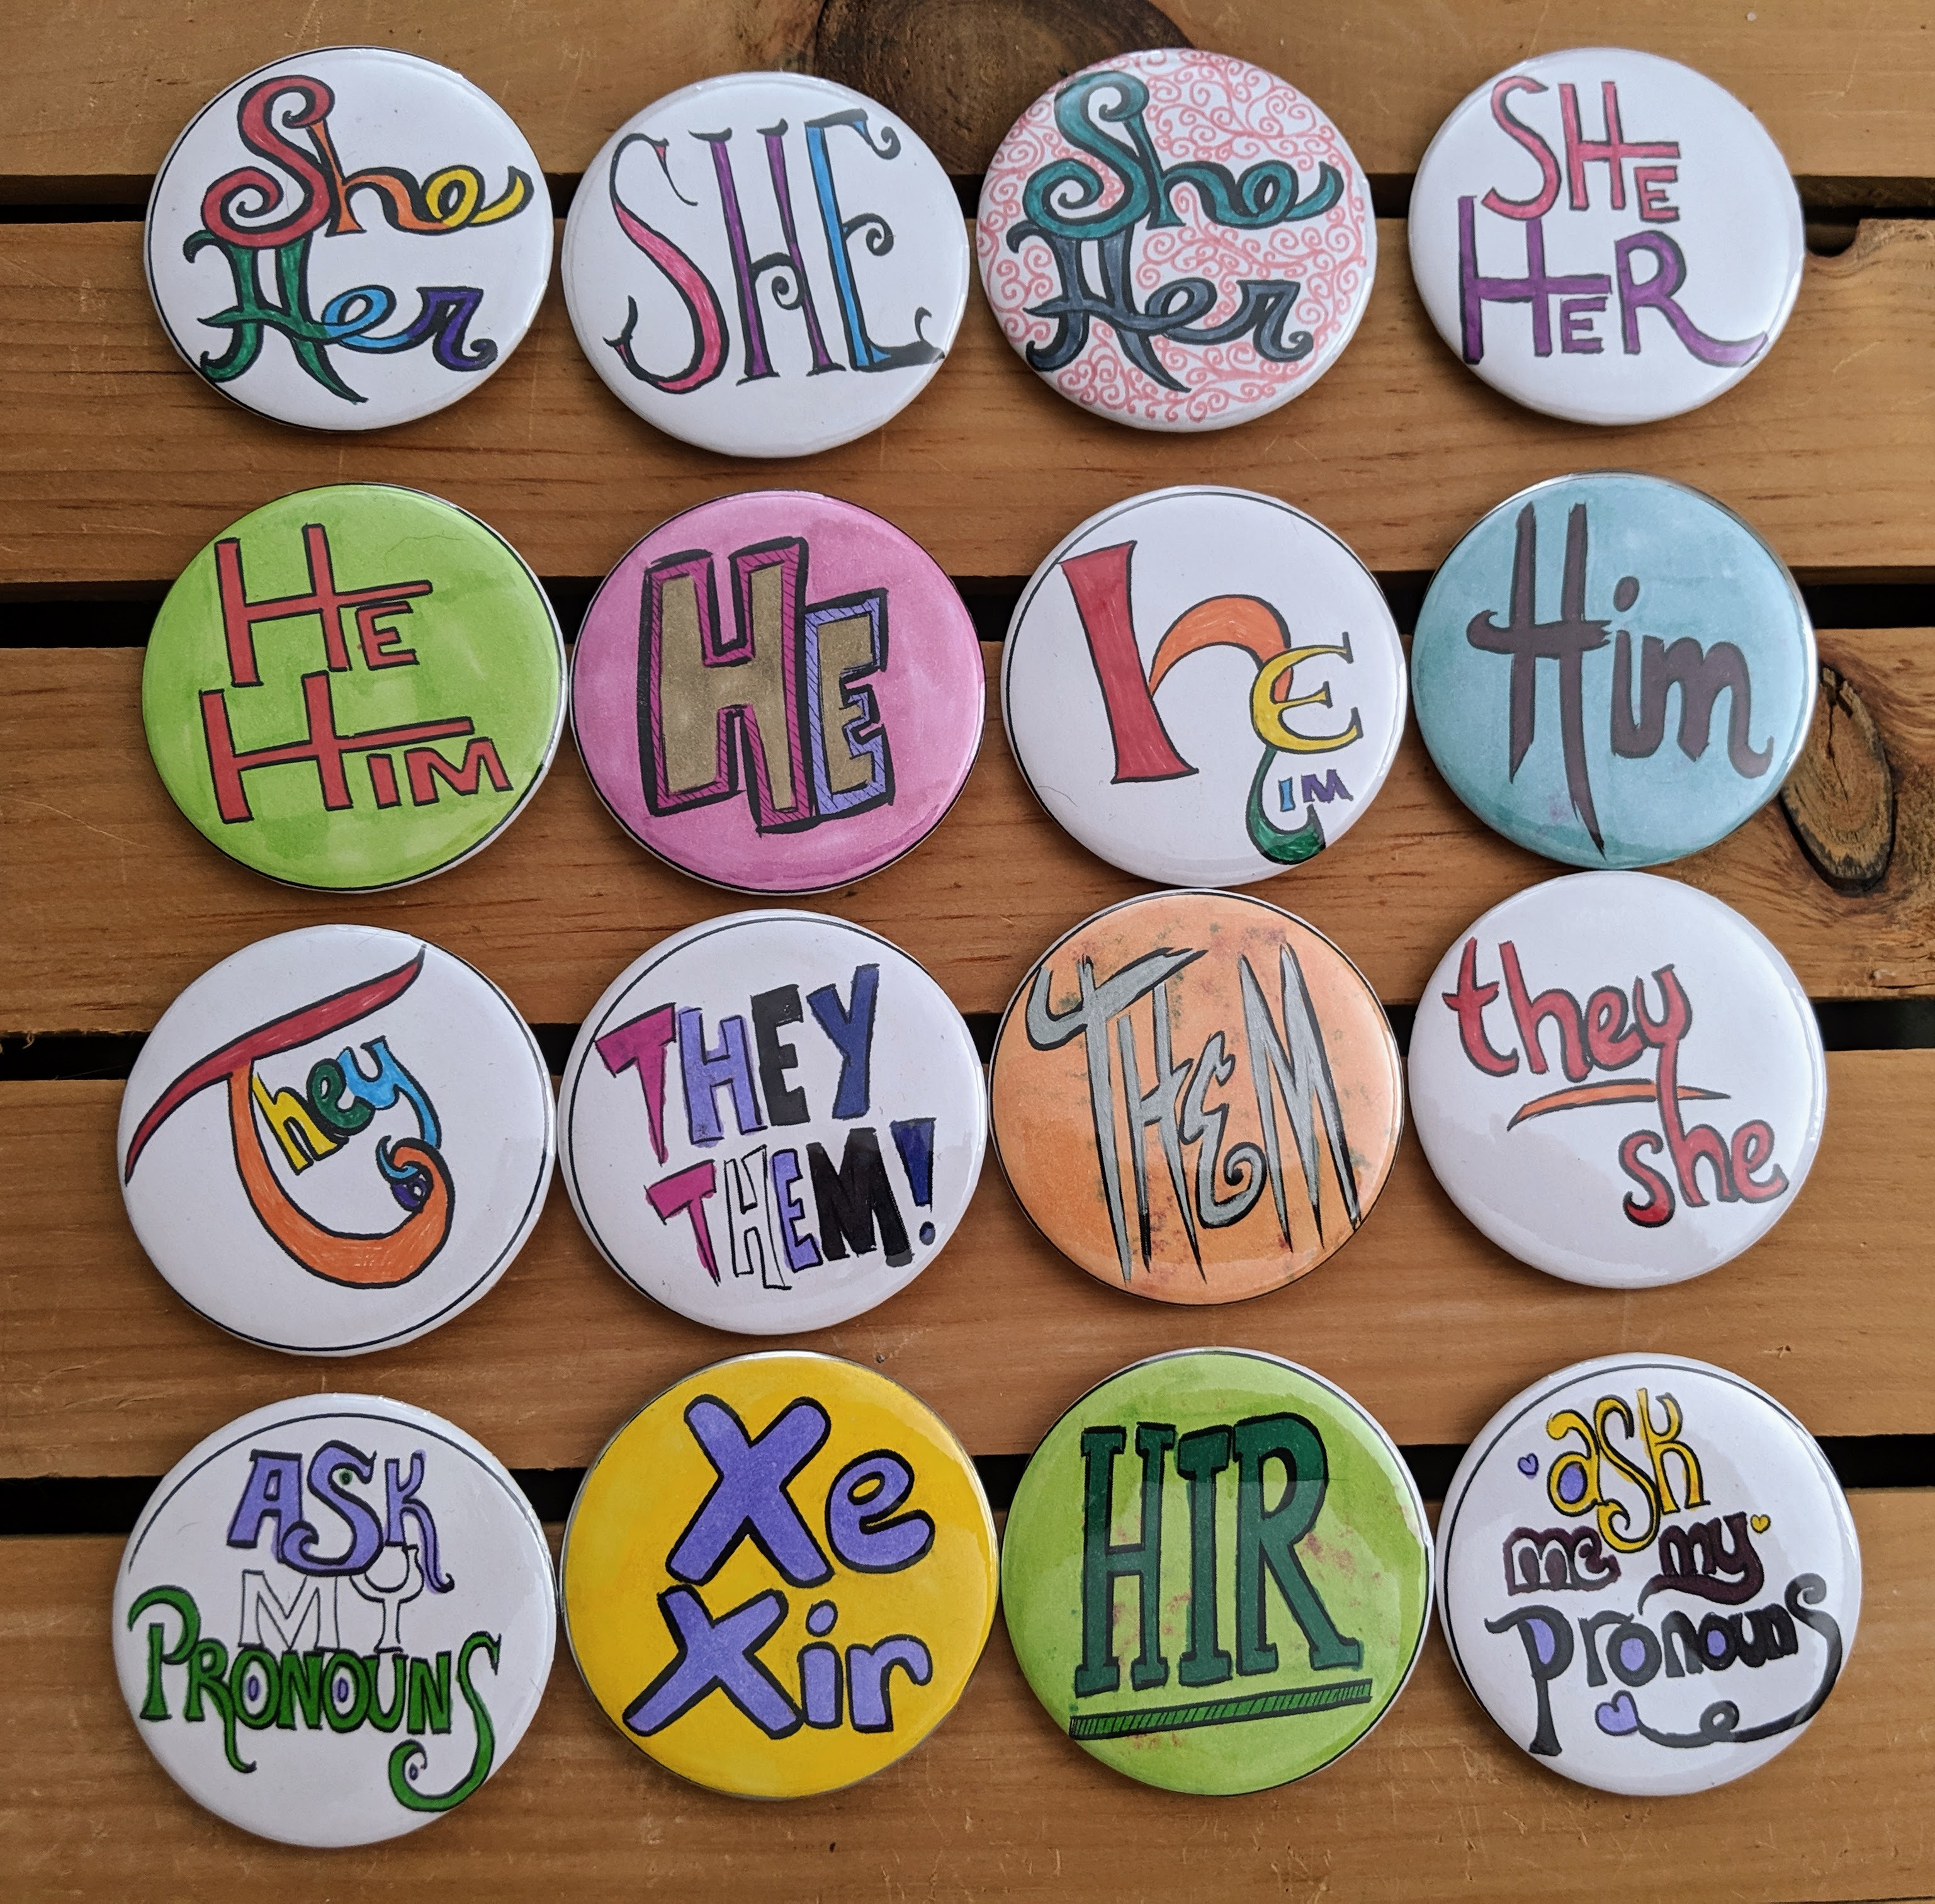 photo of colorful buttons with various pronouns on them